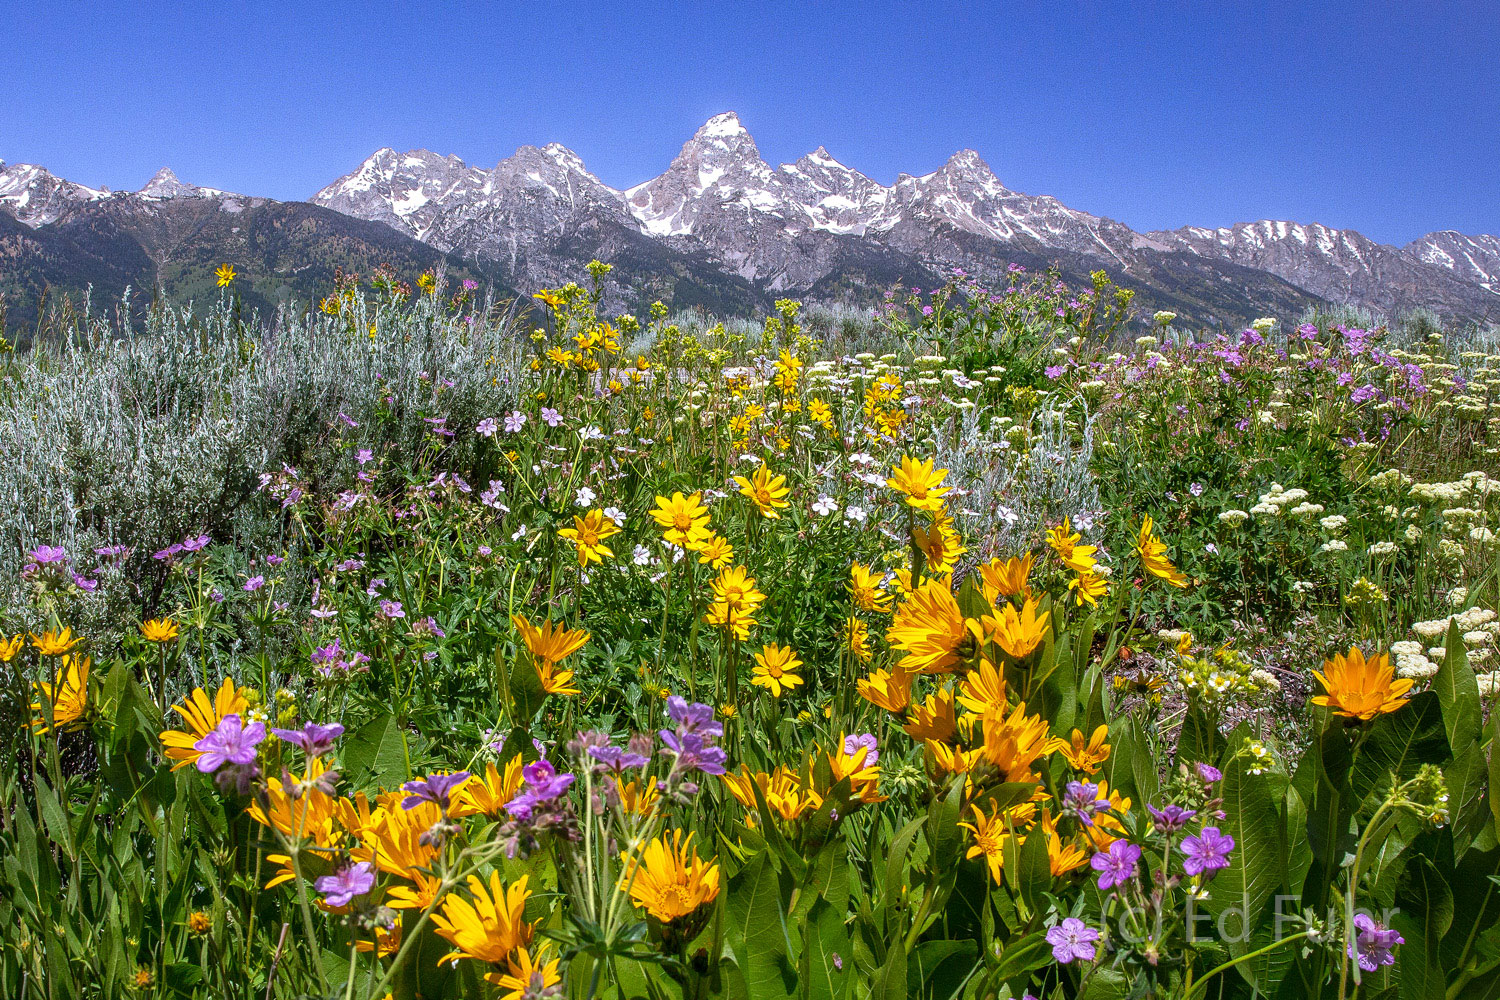 grand teton national park, wildflowers, photograph, image, 2013, Tetons, Grand Teton, photo